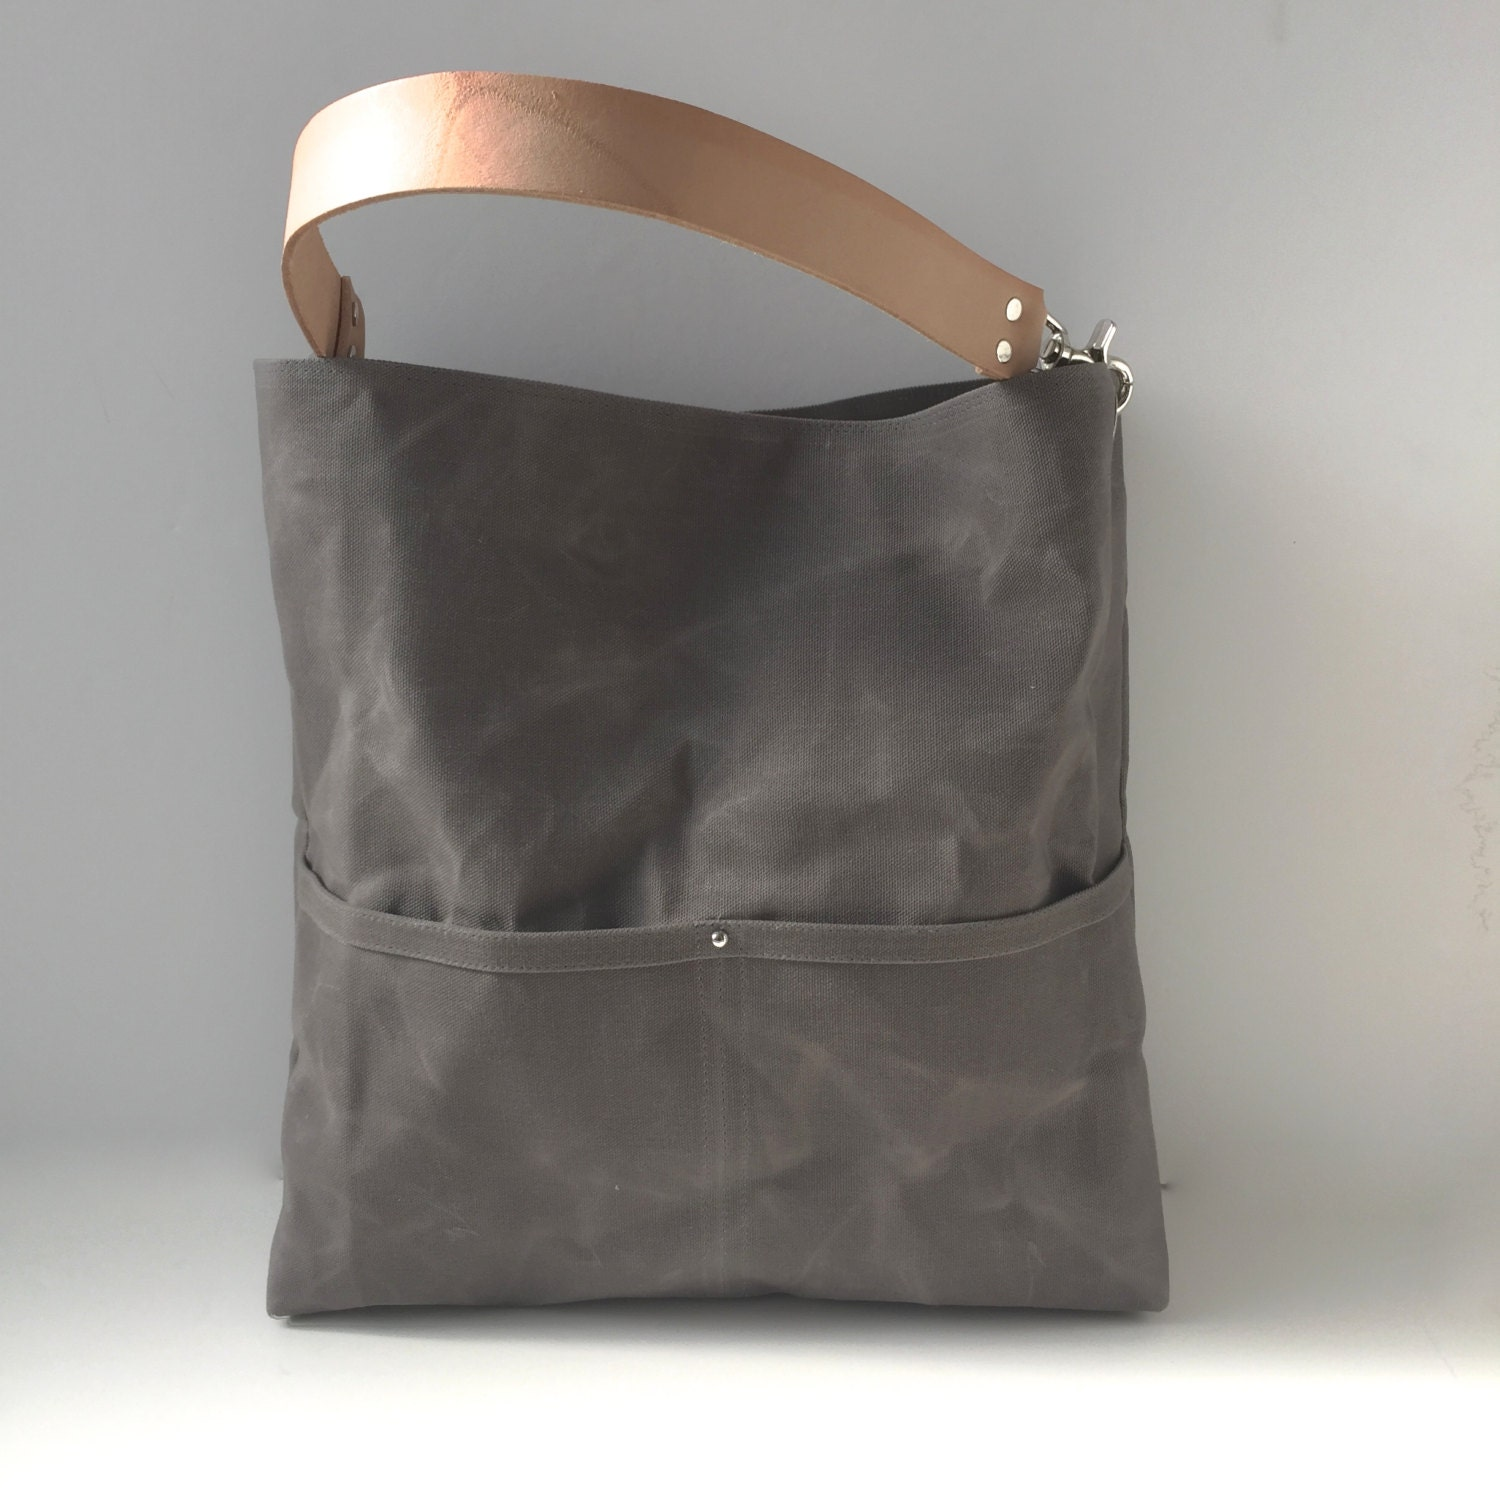 waxed canvas tote bag bucket bag gray bag hobo tote casual. Black Bedroom Furniture Sets. Home Design Ideas